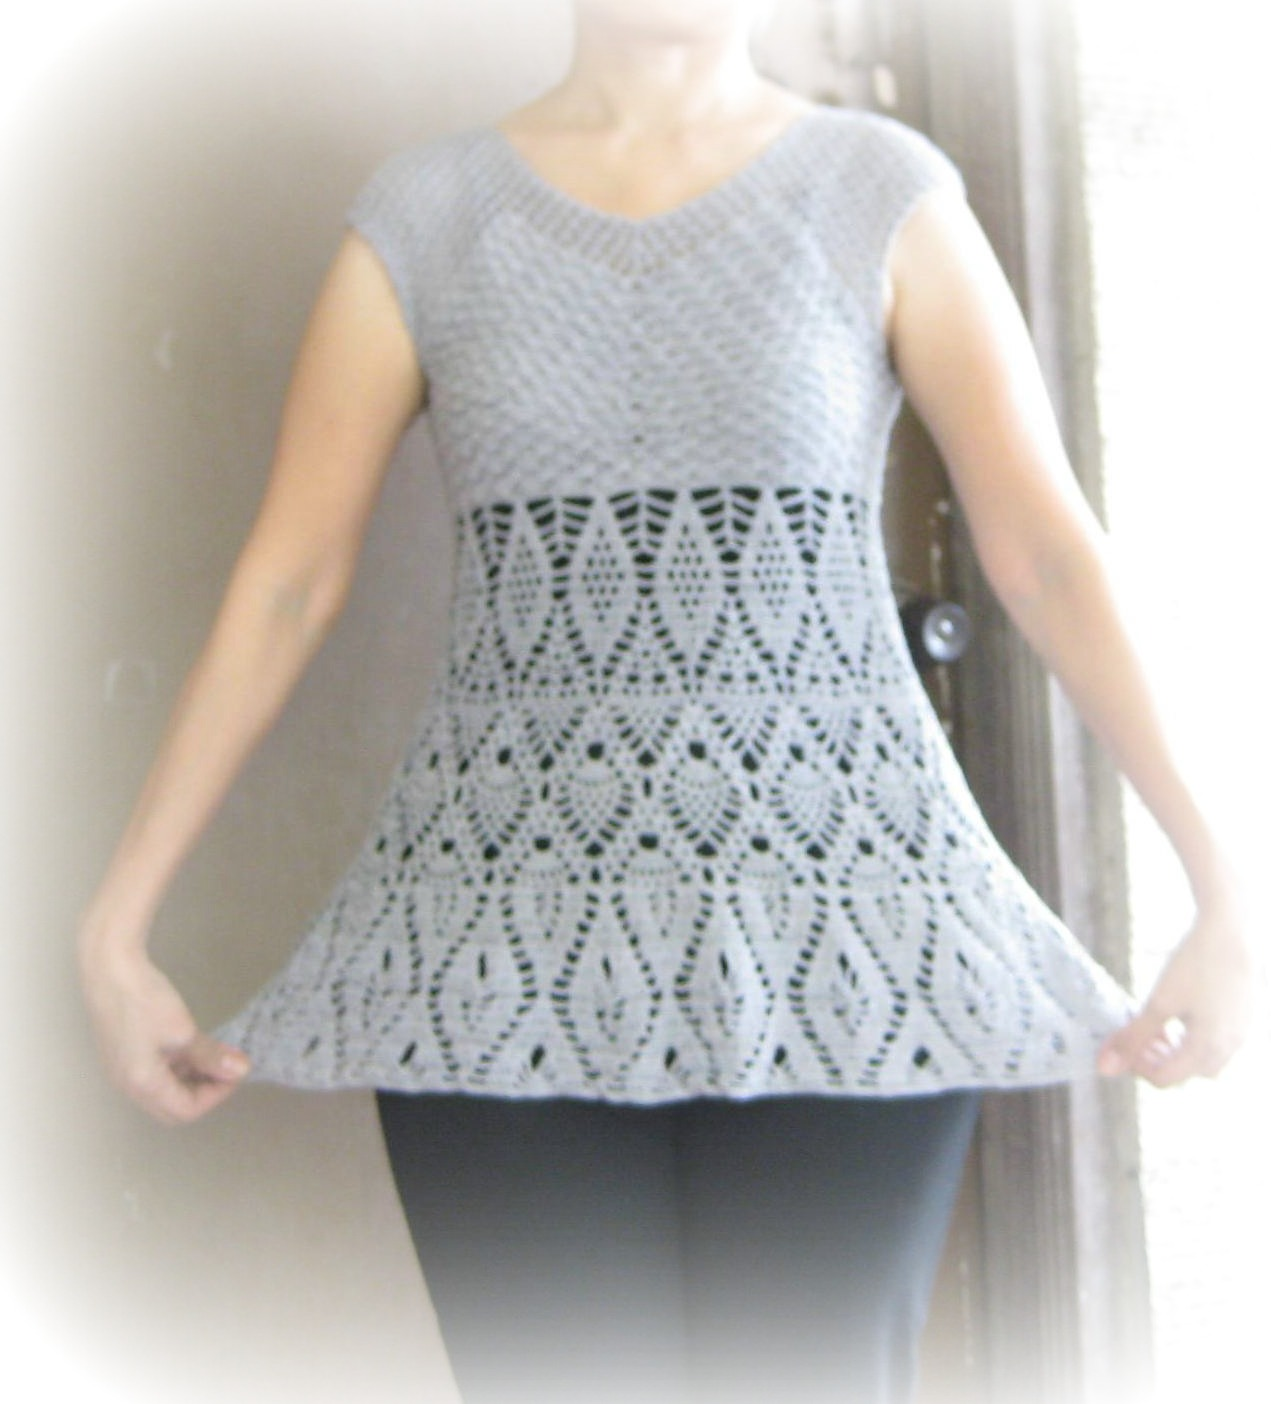 Crochet Patterns Lace Tops : Crochet and Other Stuff: Recent FOs - Crochet Wearables!